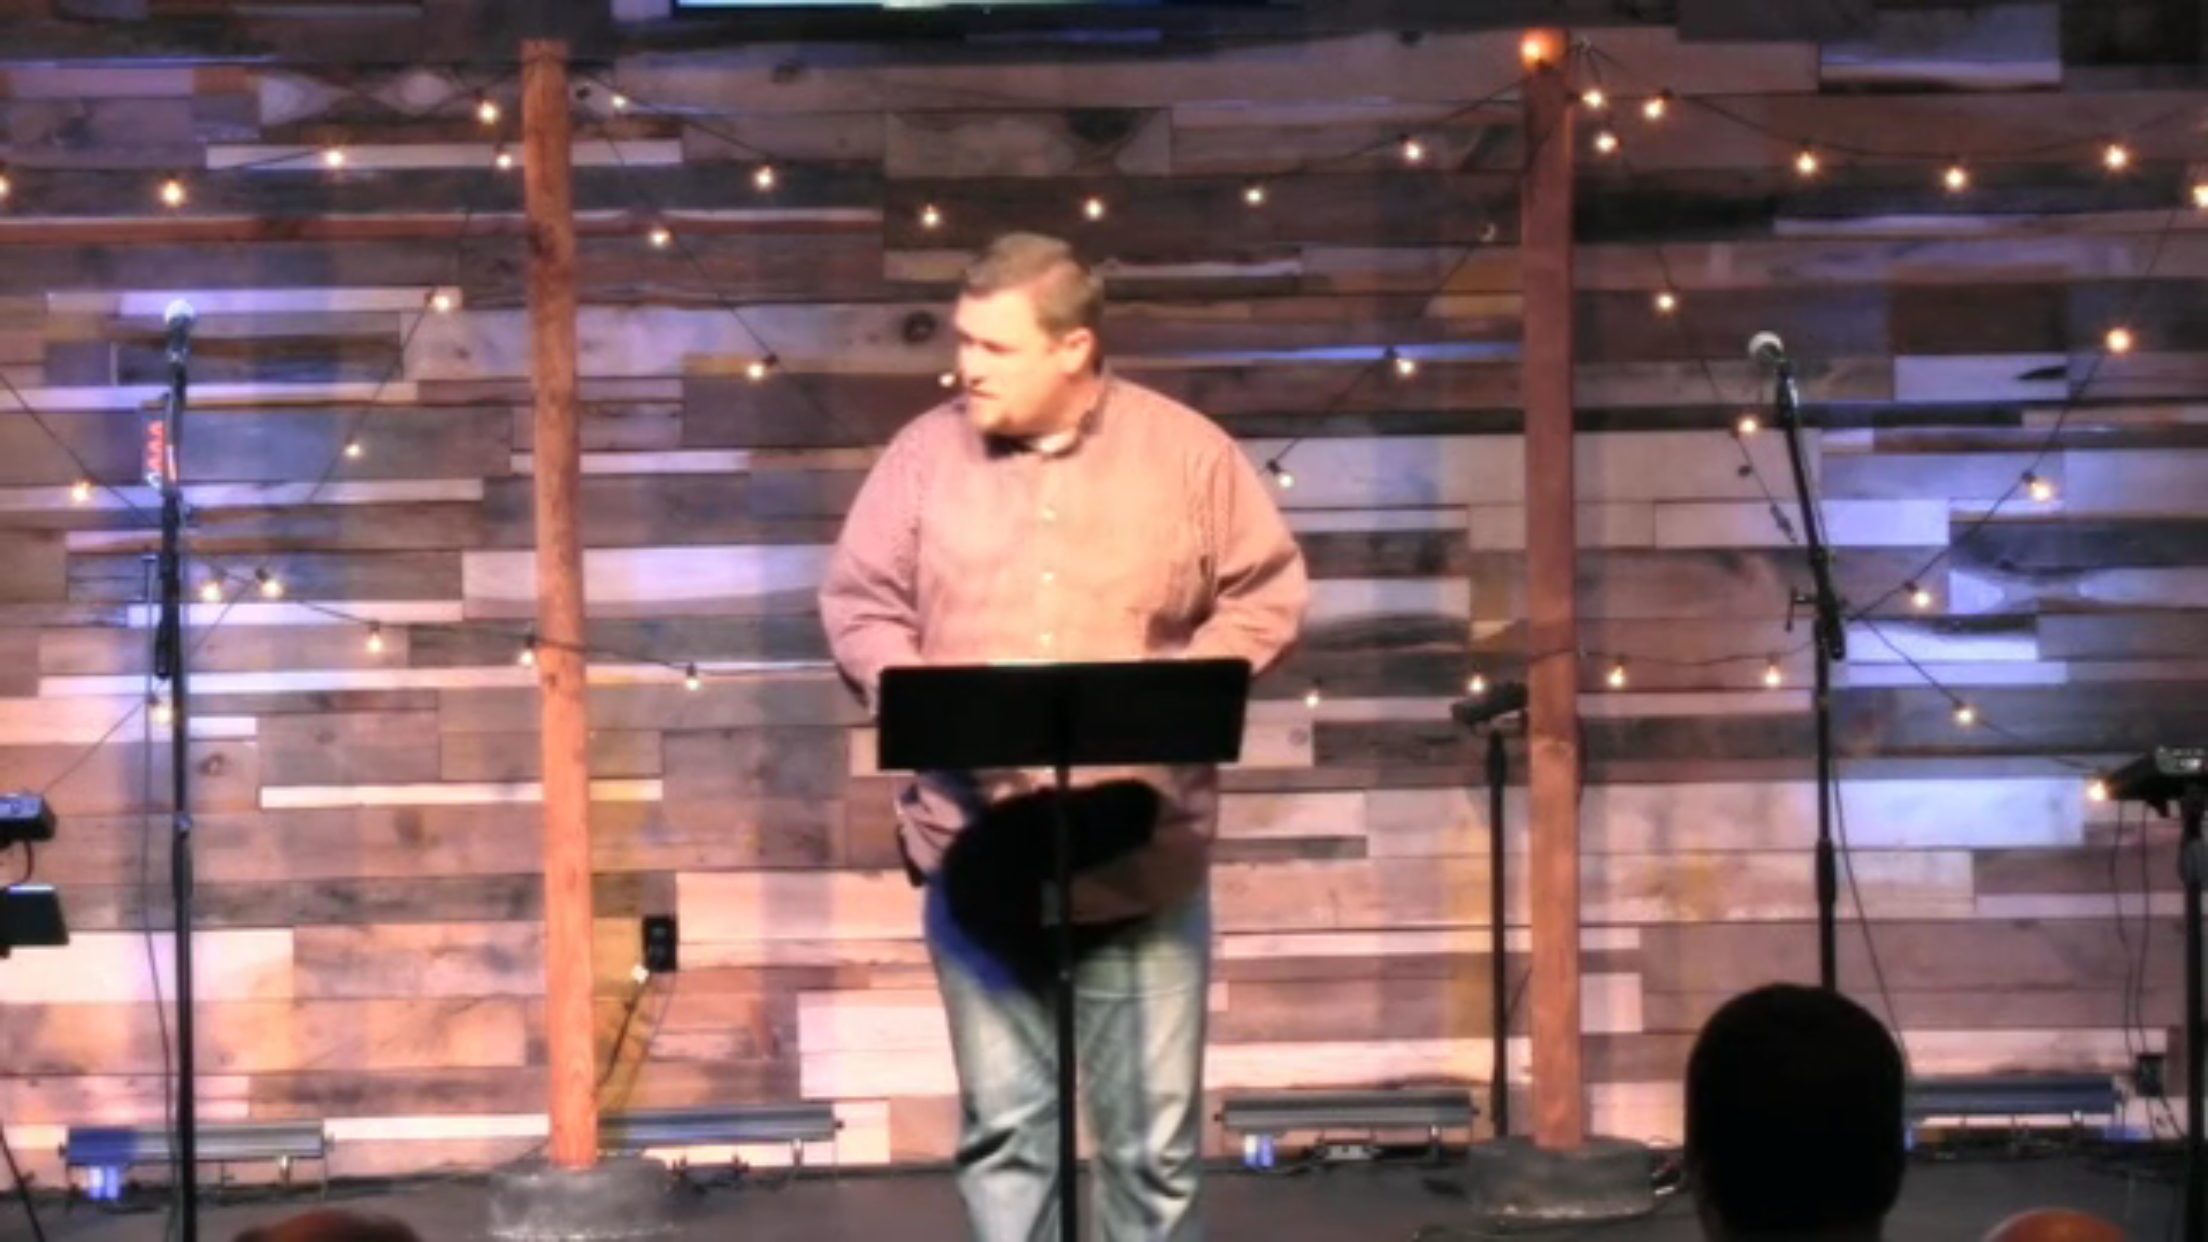 Sermon Video: How to Find True Love